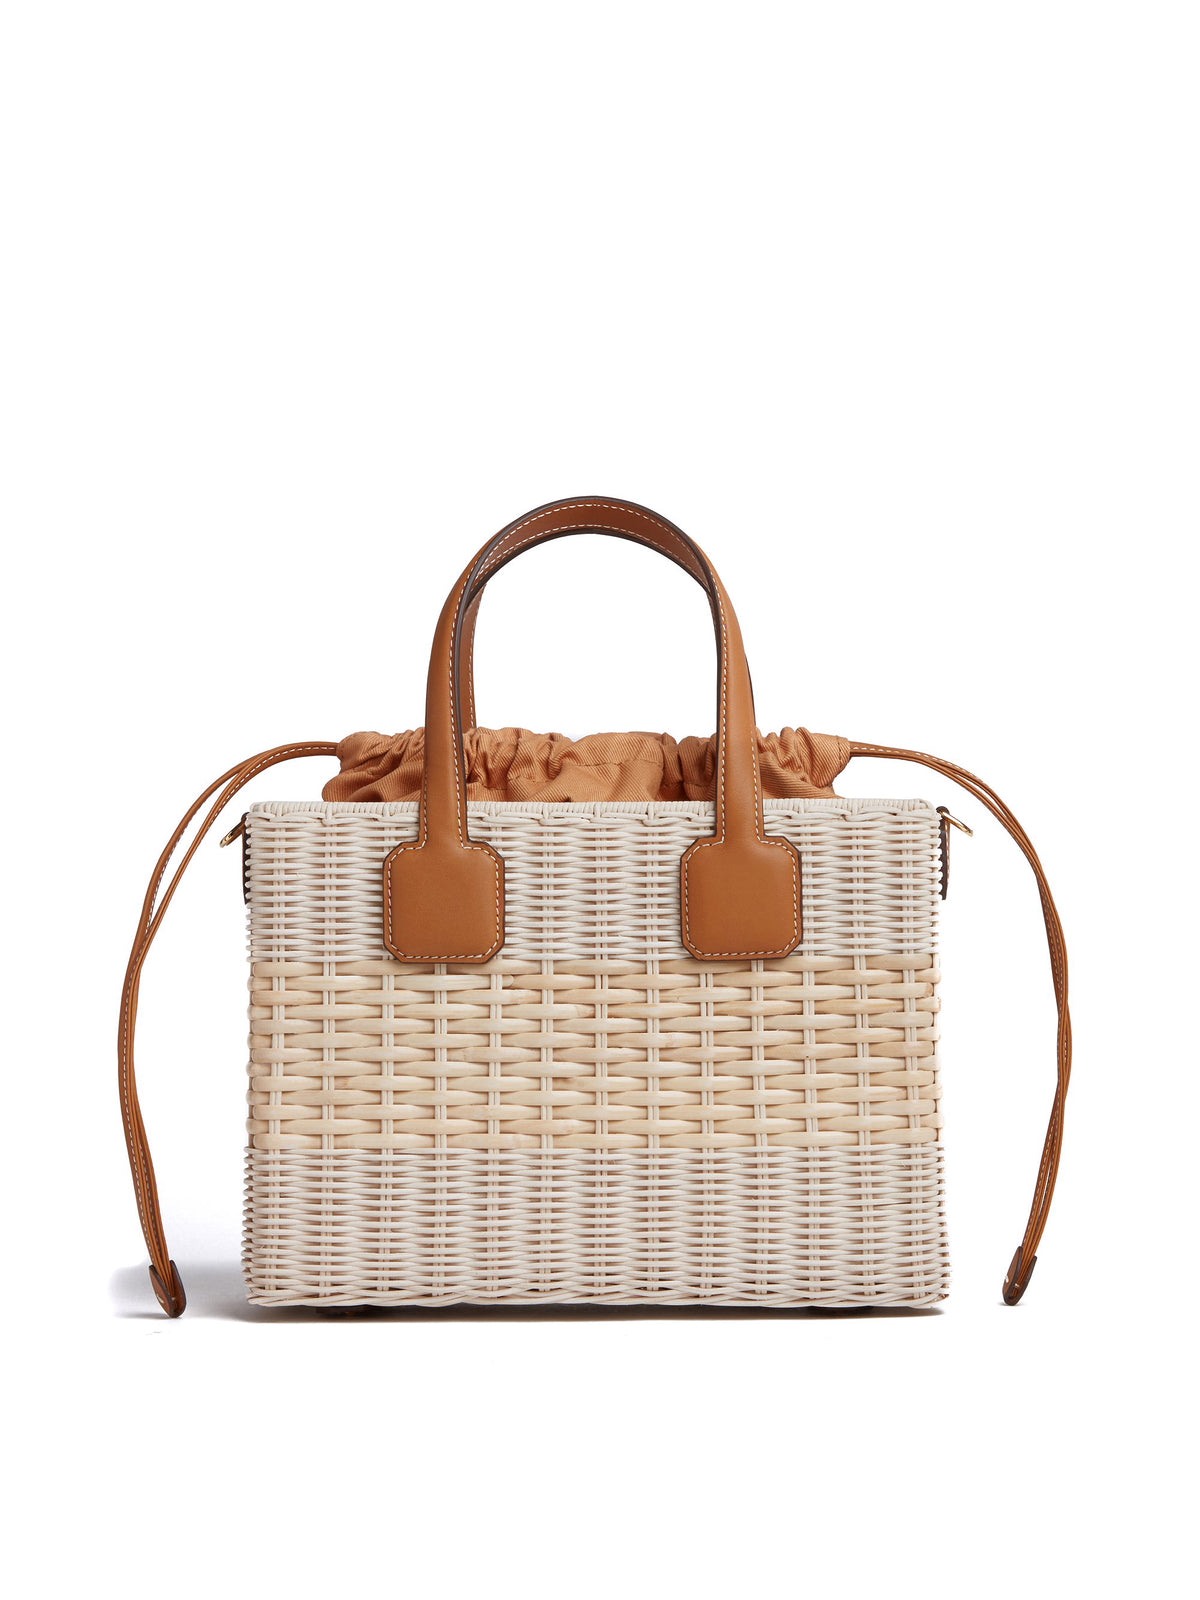 Manray Rattan & Leather Tote Bag Soft Calf Luggage / Bleach Rattan Back